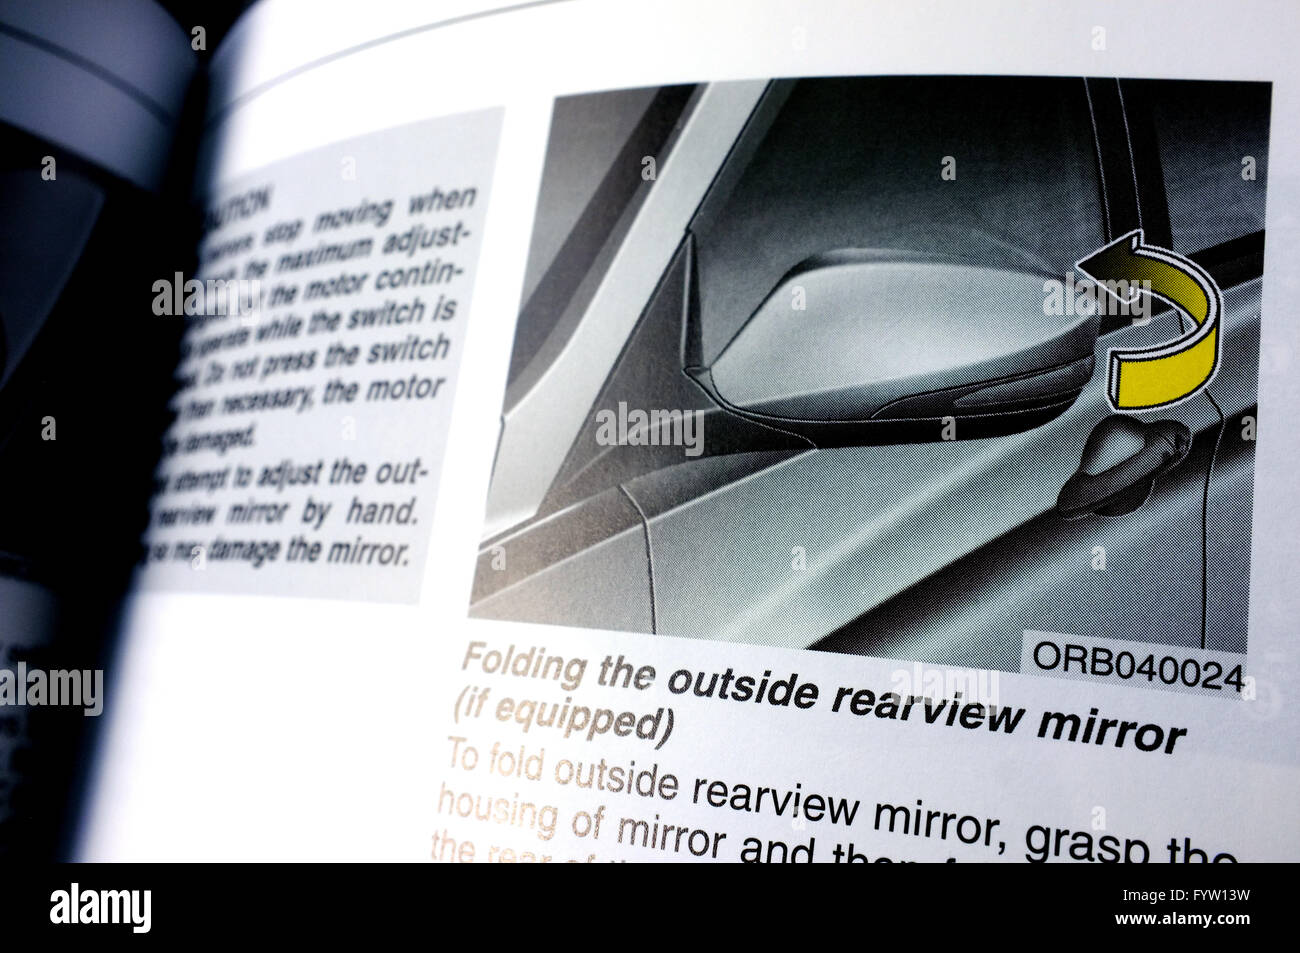 pages about the rearview mirror in a hyundai accent owner's manual stock  photo - alamy  alamy